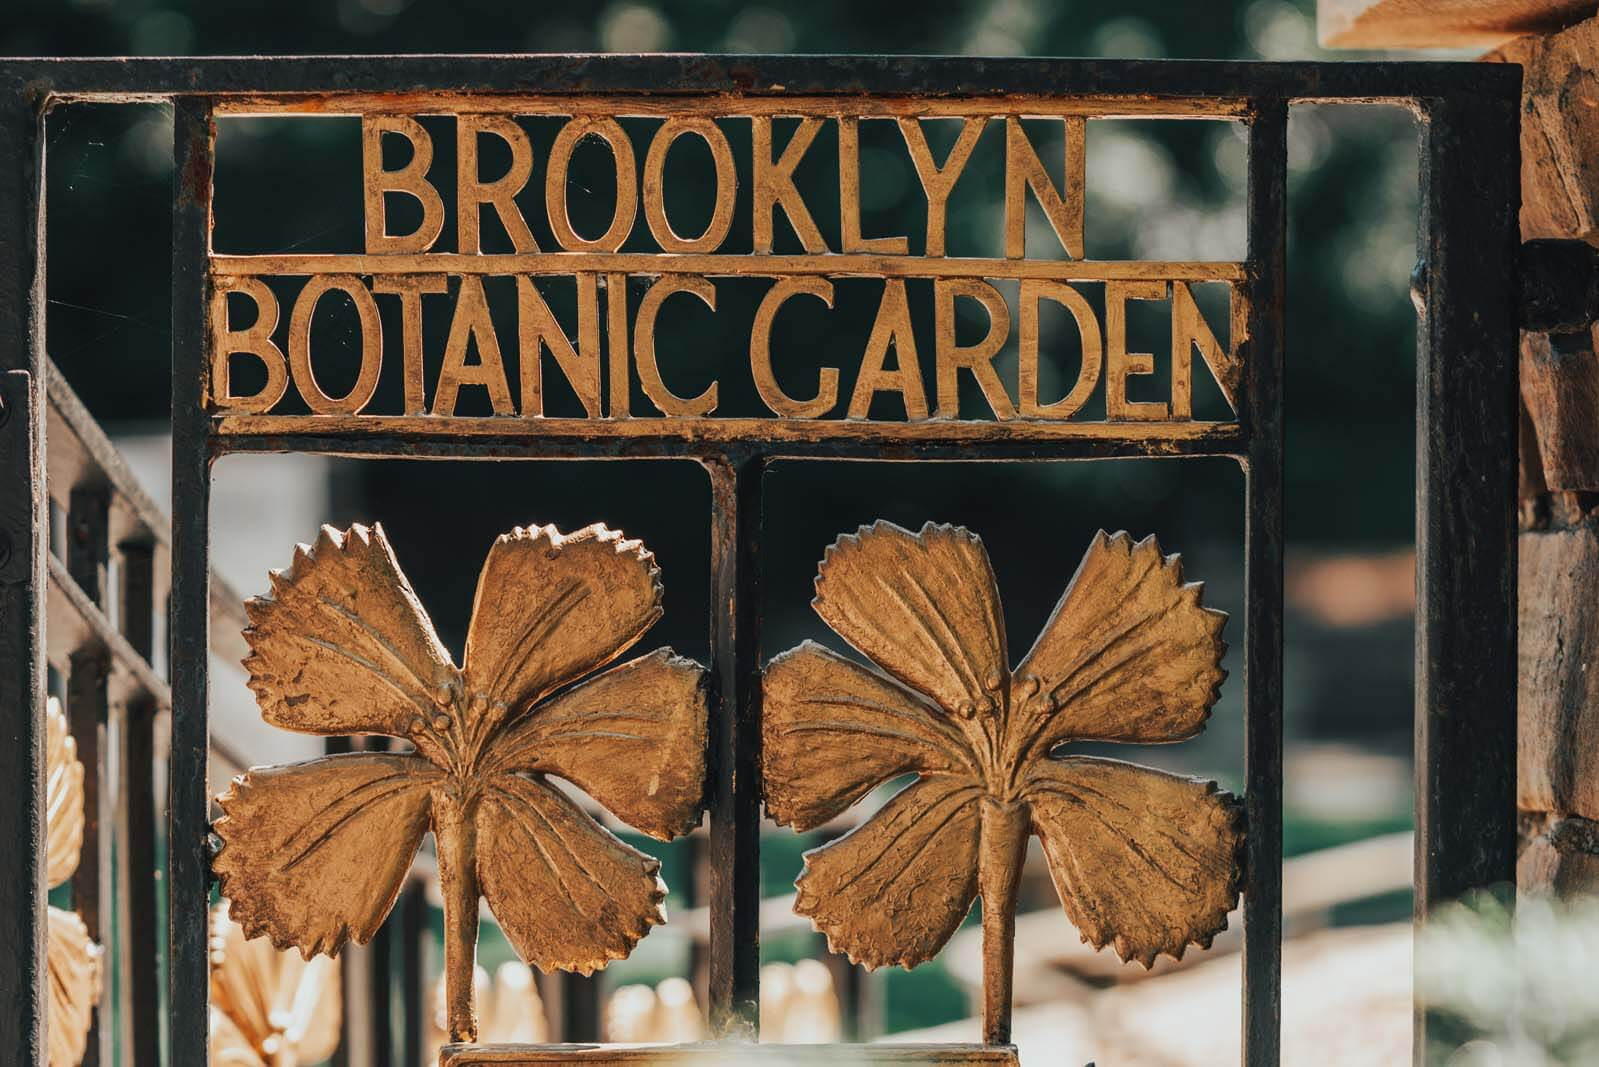 entrance to the fragrance garden at Brooklyn Botanical